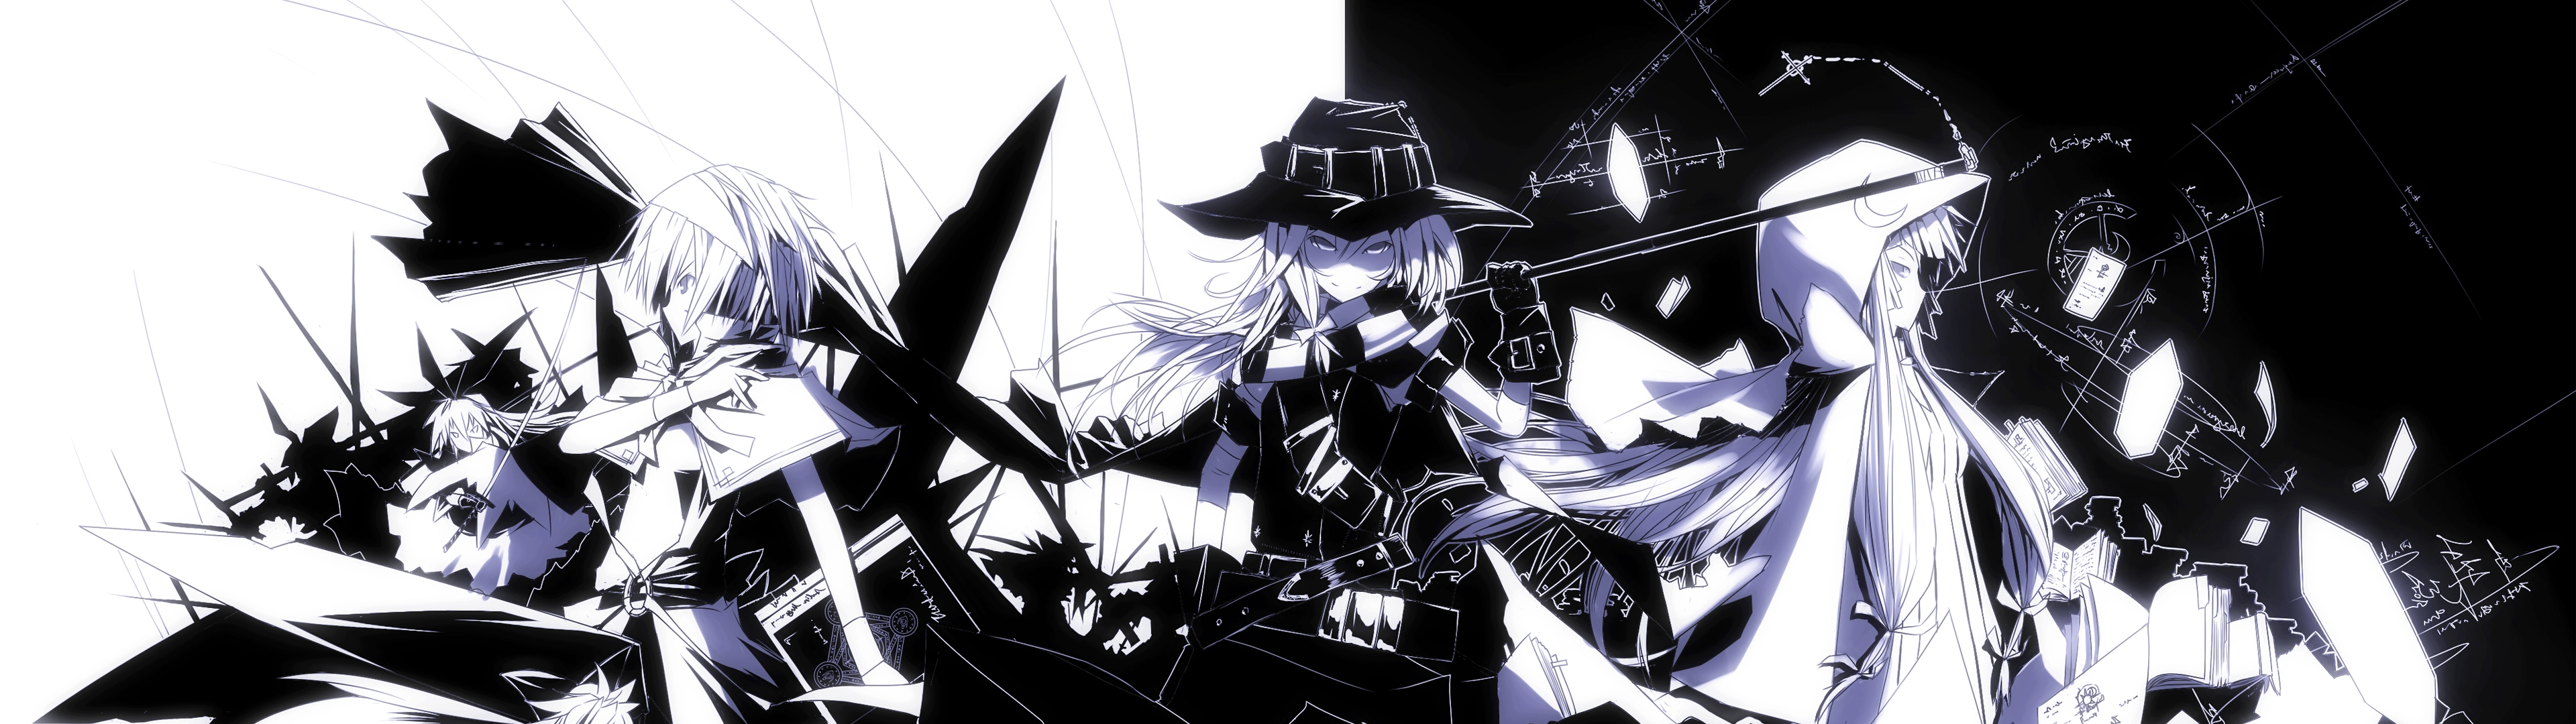 3840x1080 Anime Wallpapers Top Free 3840x1080 Anime Backgrounds